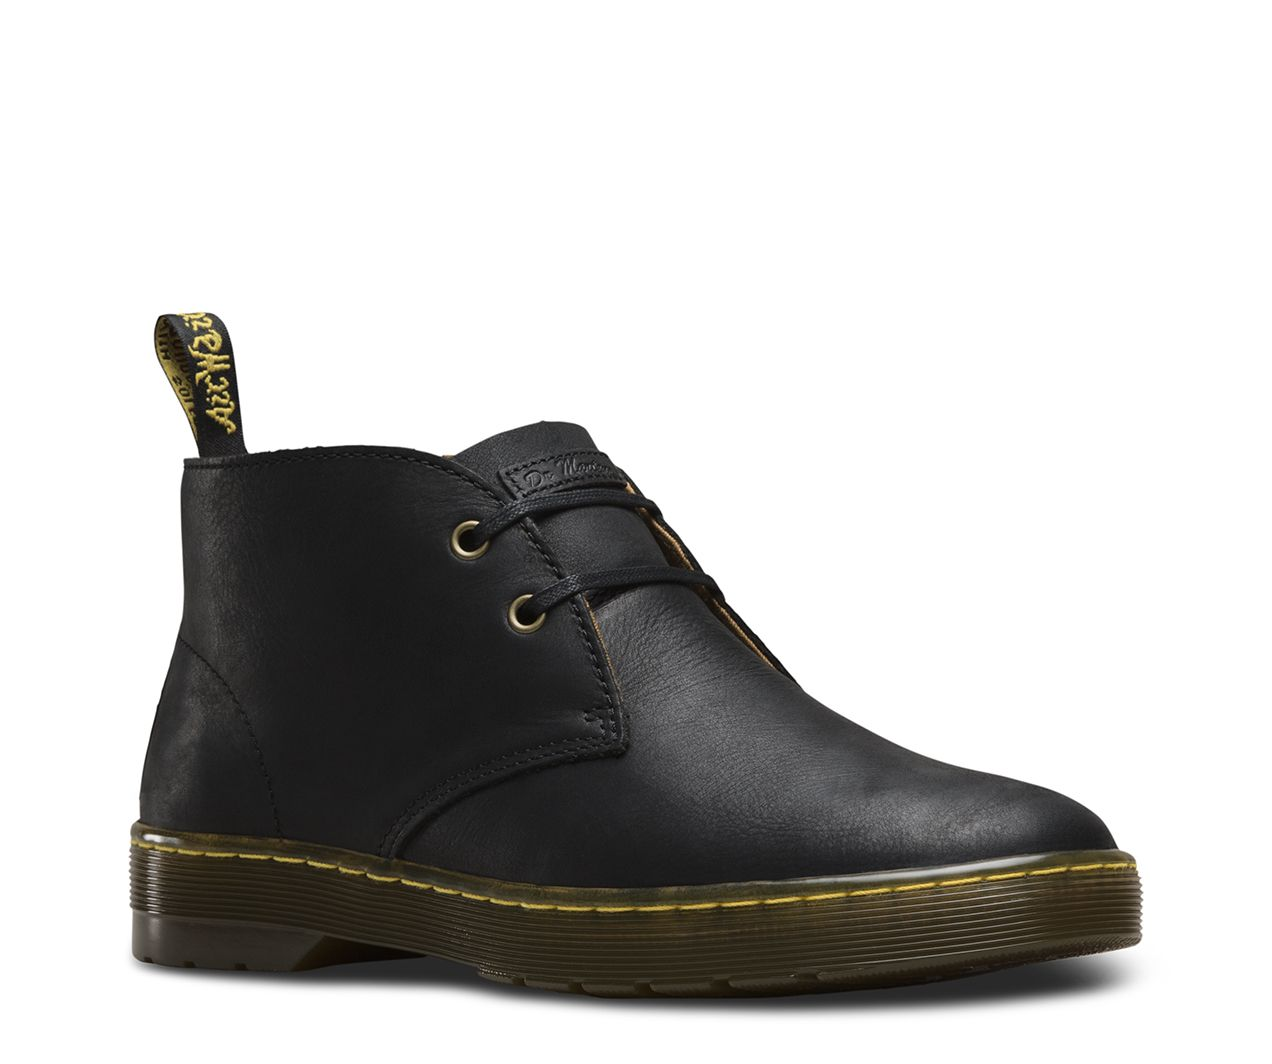 3a78becd0ac Dr martens cabrillo wyoming | Clothing | Boots, Desert boots, Shoes